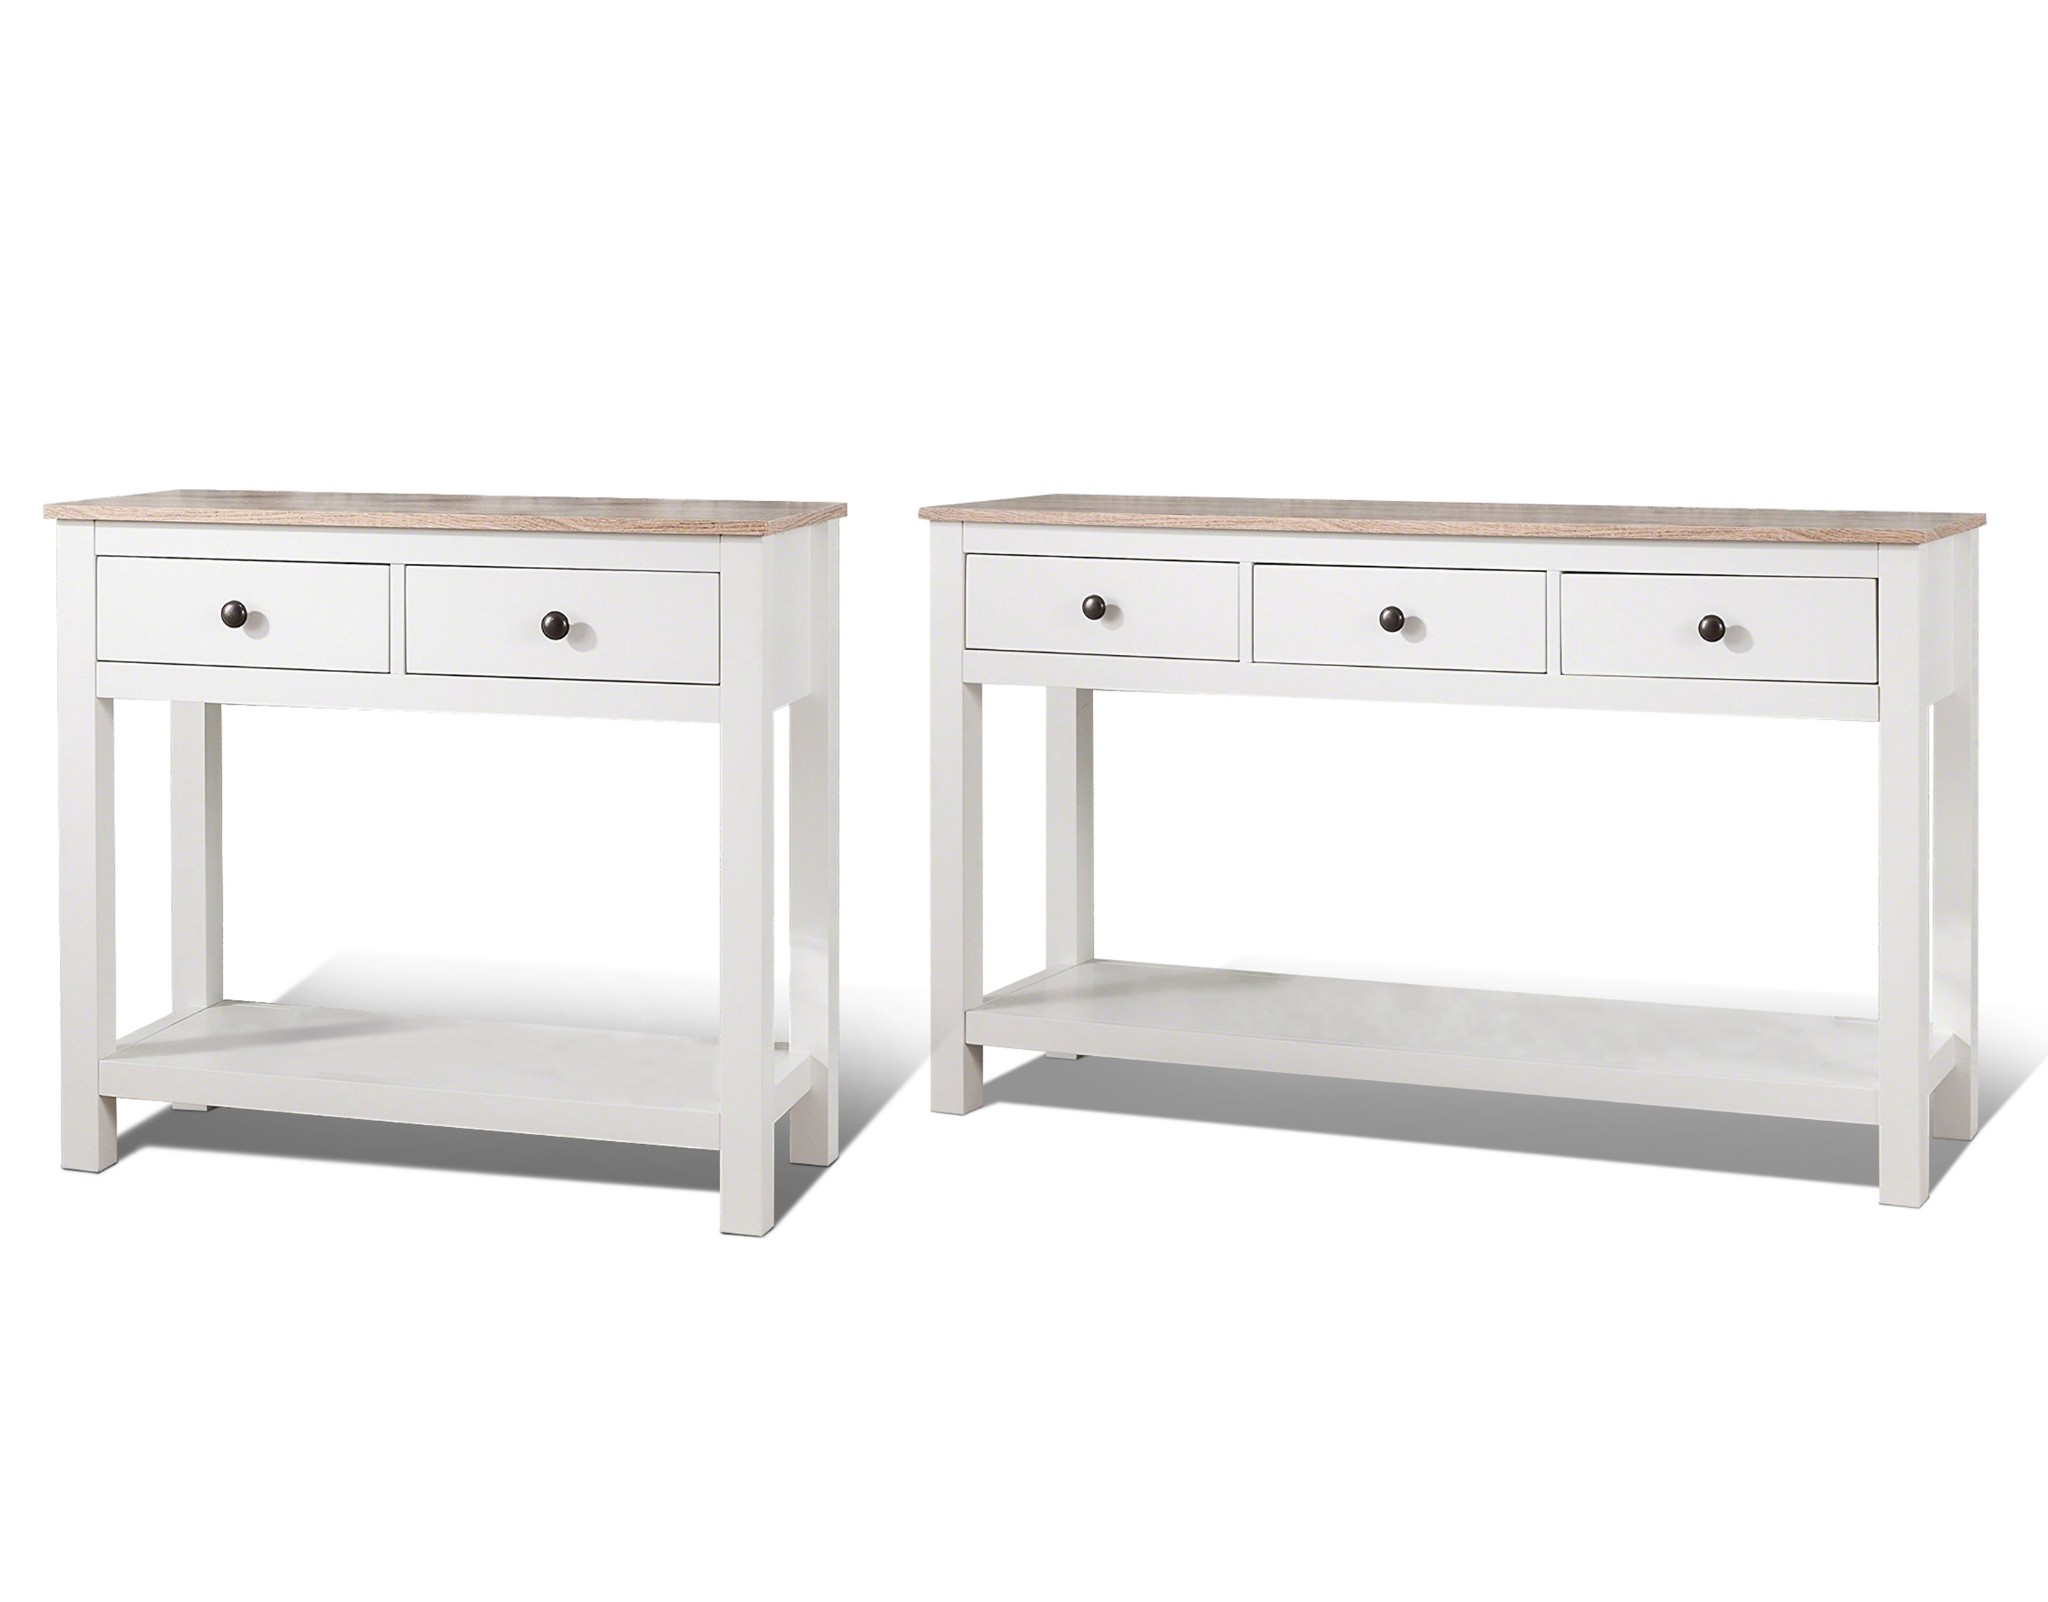 Admirable Details About Laura James White Console Table With 2 3 Drawers And Shelf Interior Design Ideas Oxytryabchikinfo